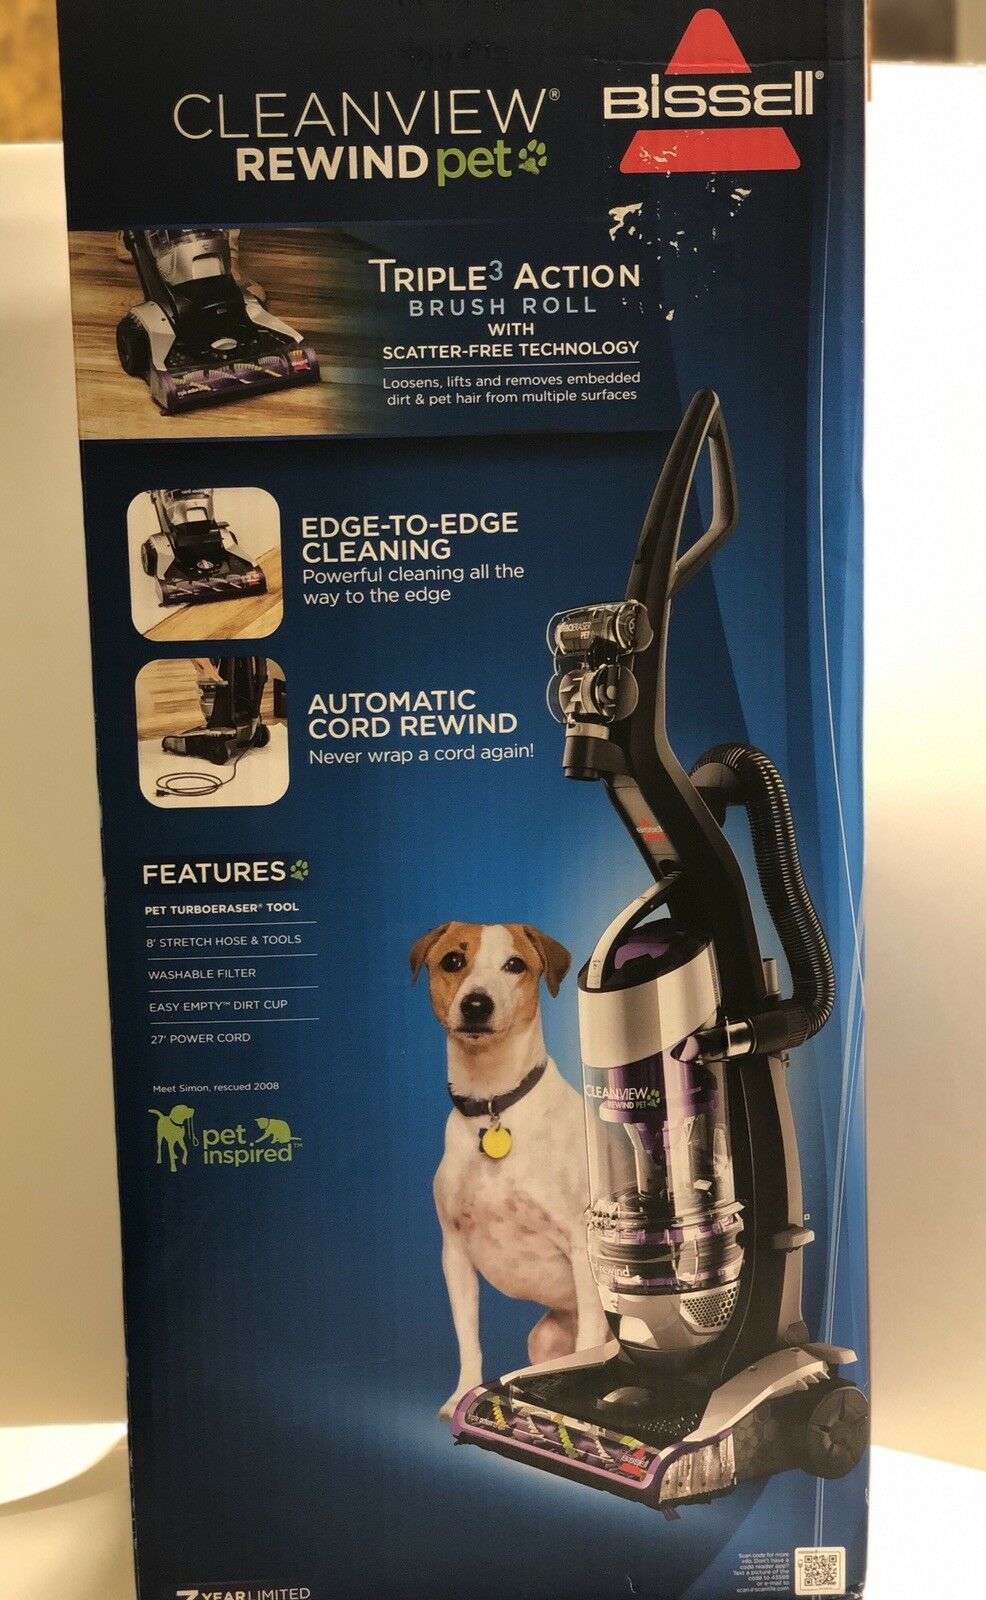 BISSELL Cleanview Swivel Rewind Pet Power Cord Vacuum Cleaner Purple 1820 New